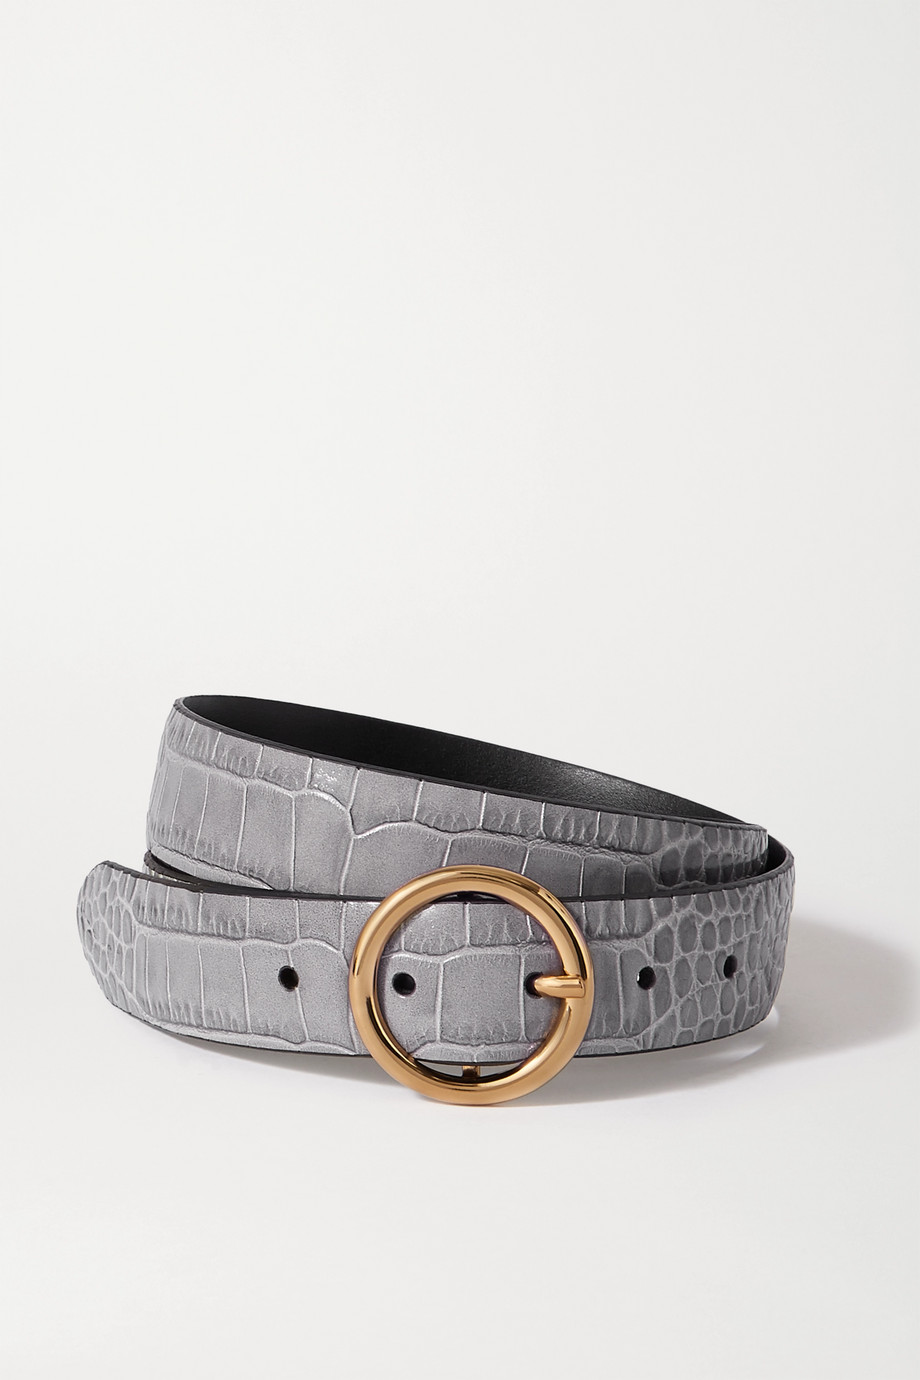 ANDERSON'S Croc-effect leather belt